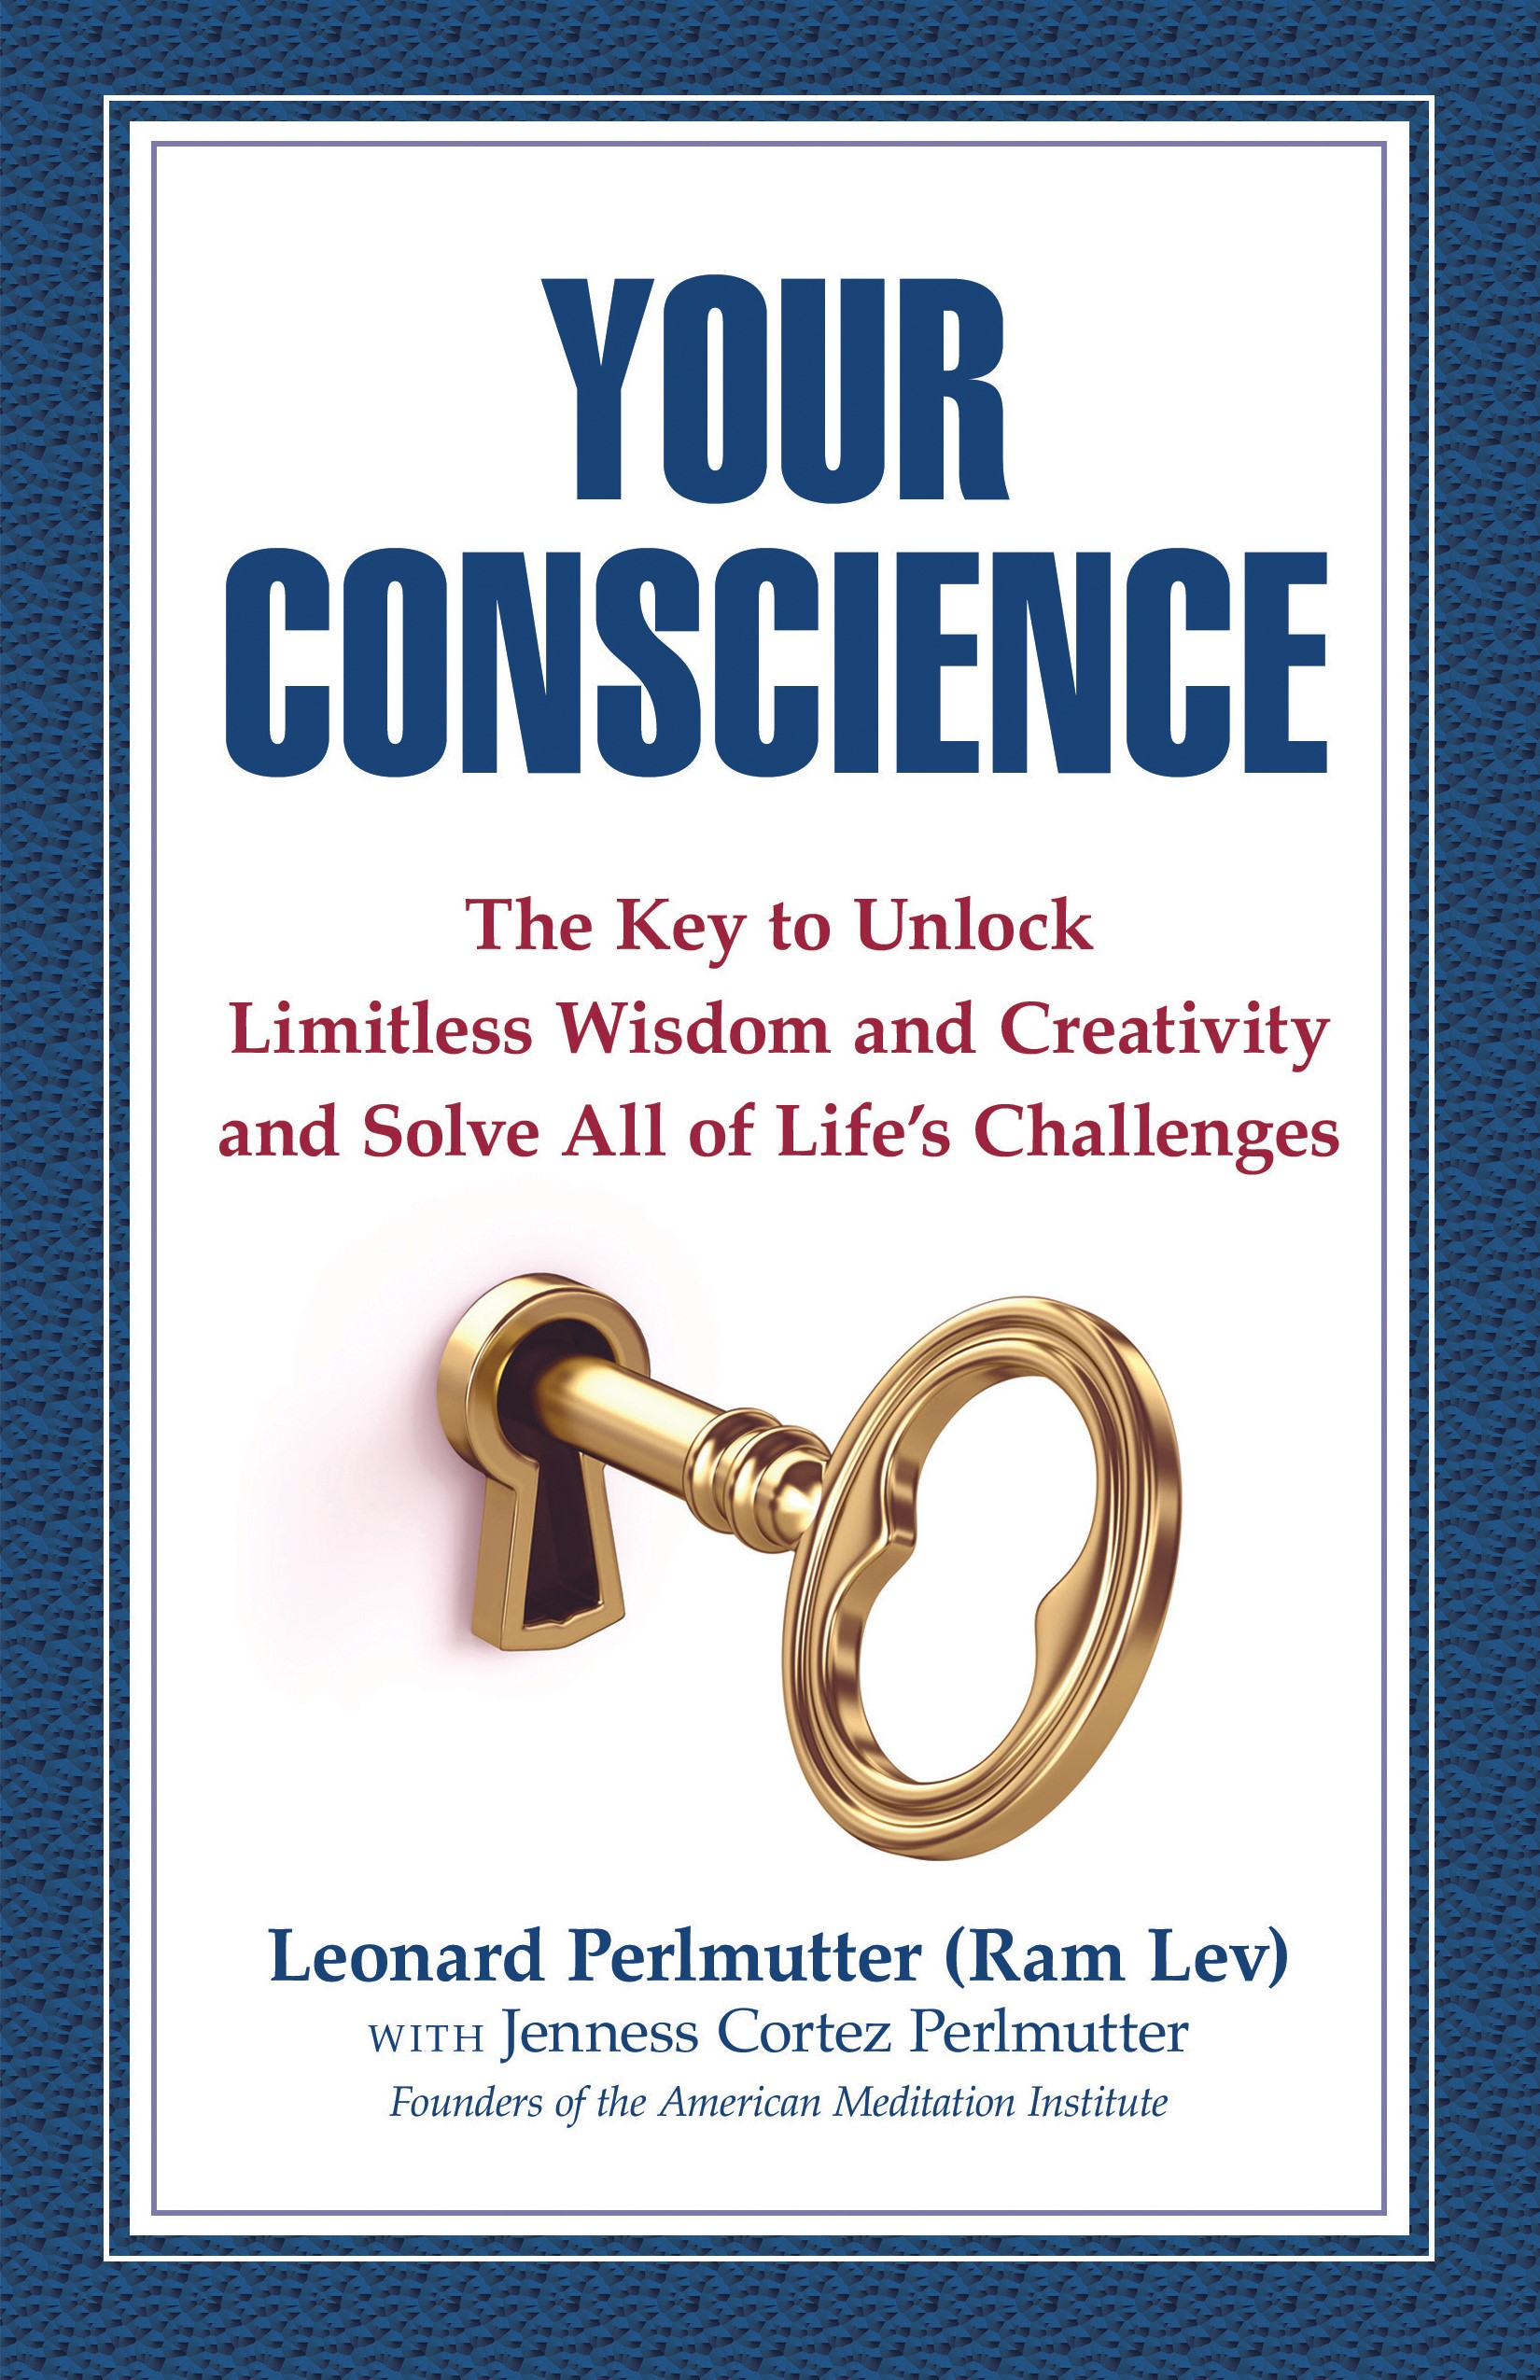 Your Conscience Book by Leonard Perlmutter (Ram Lev)